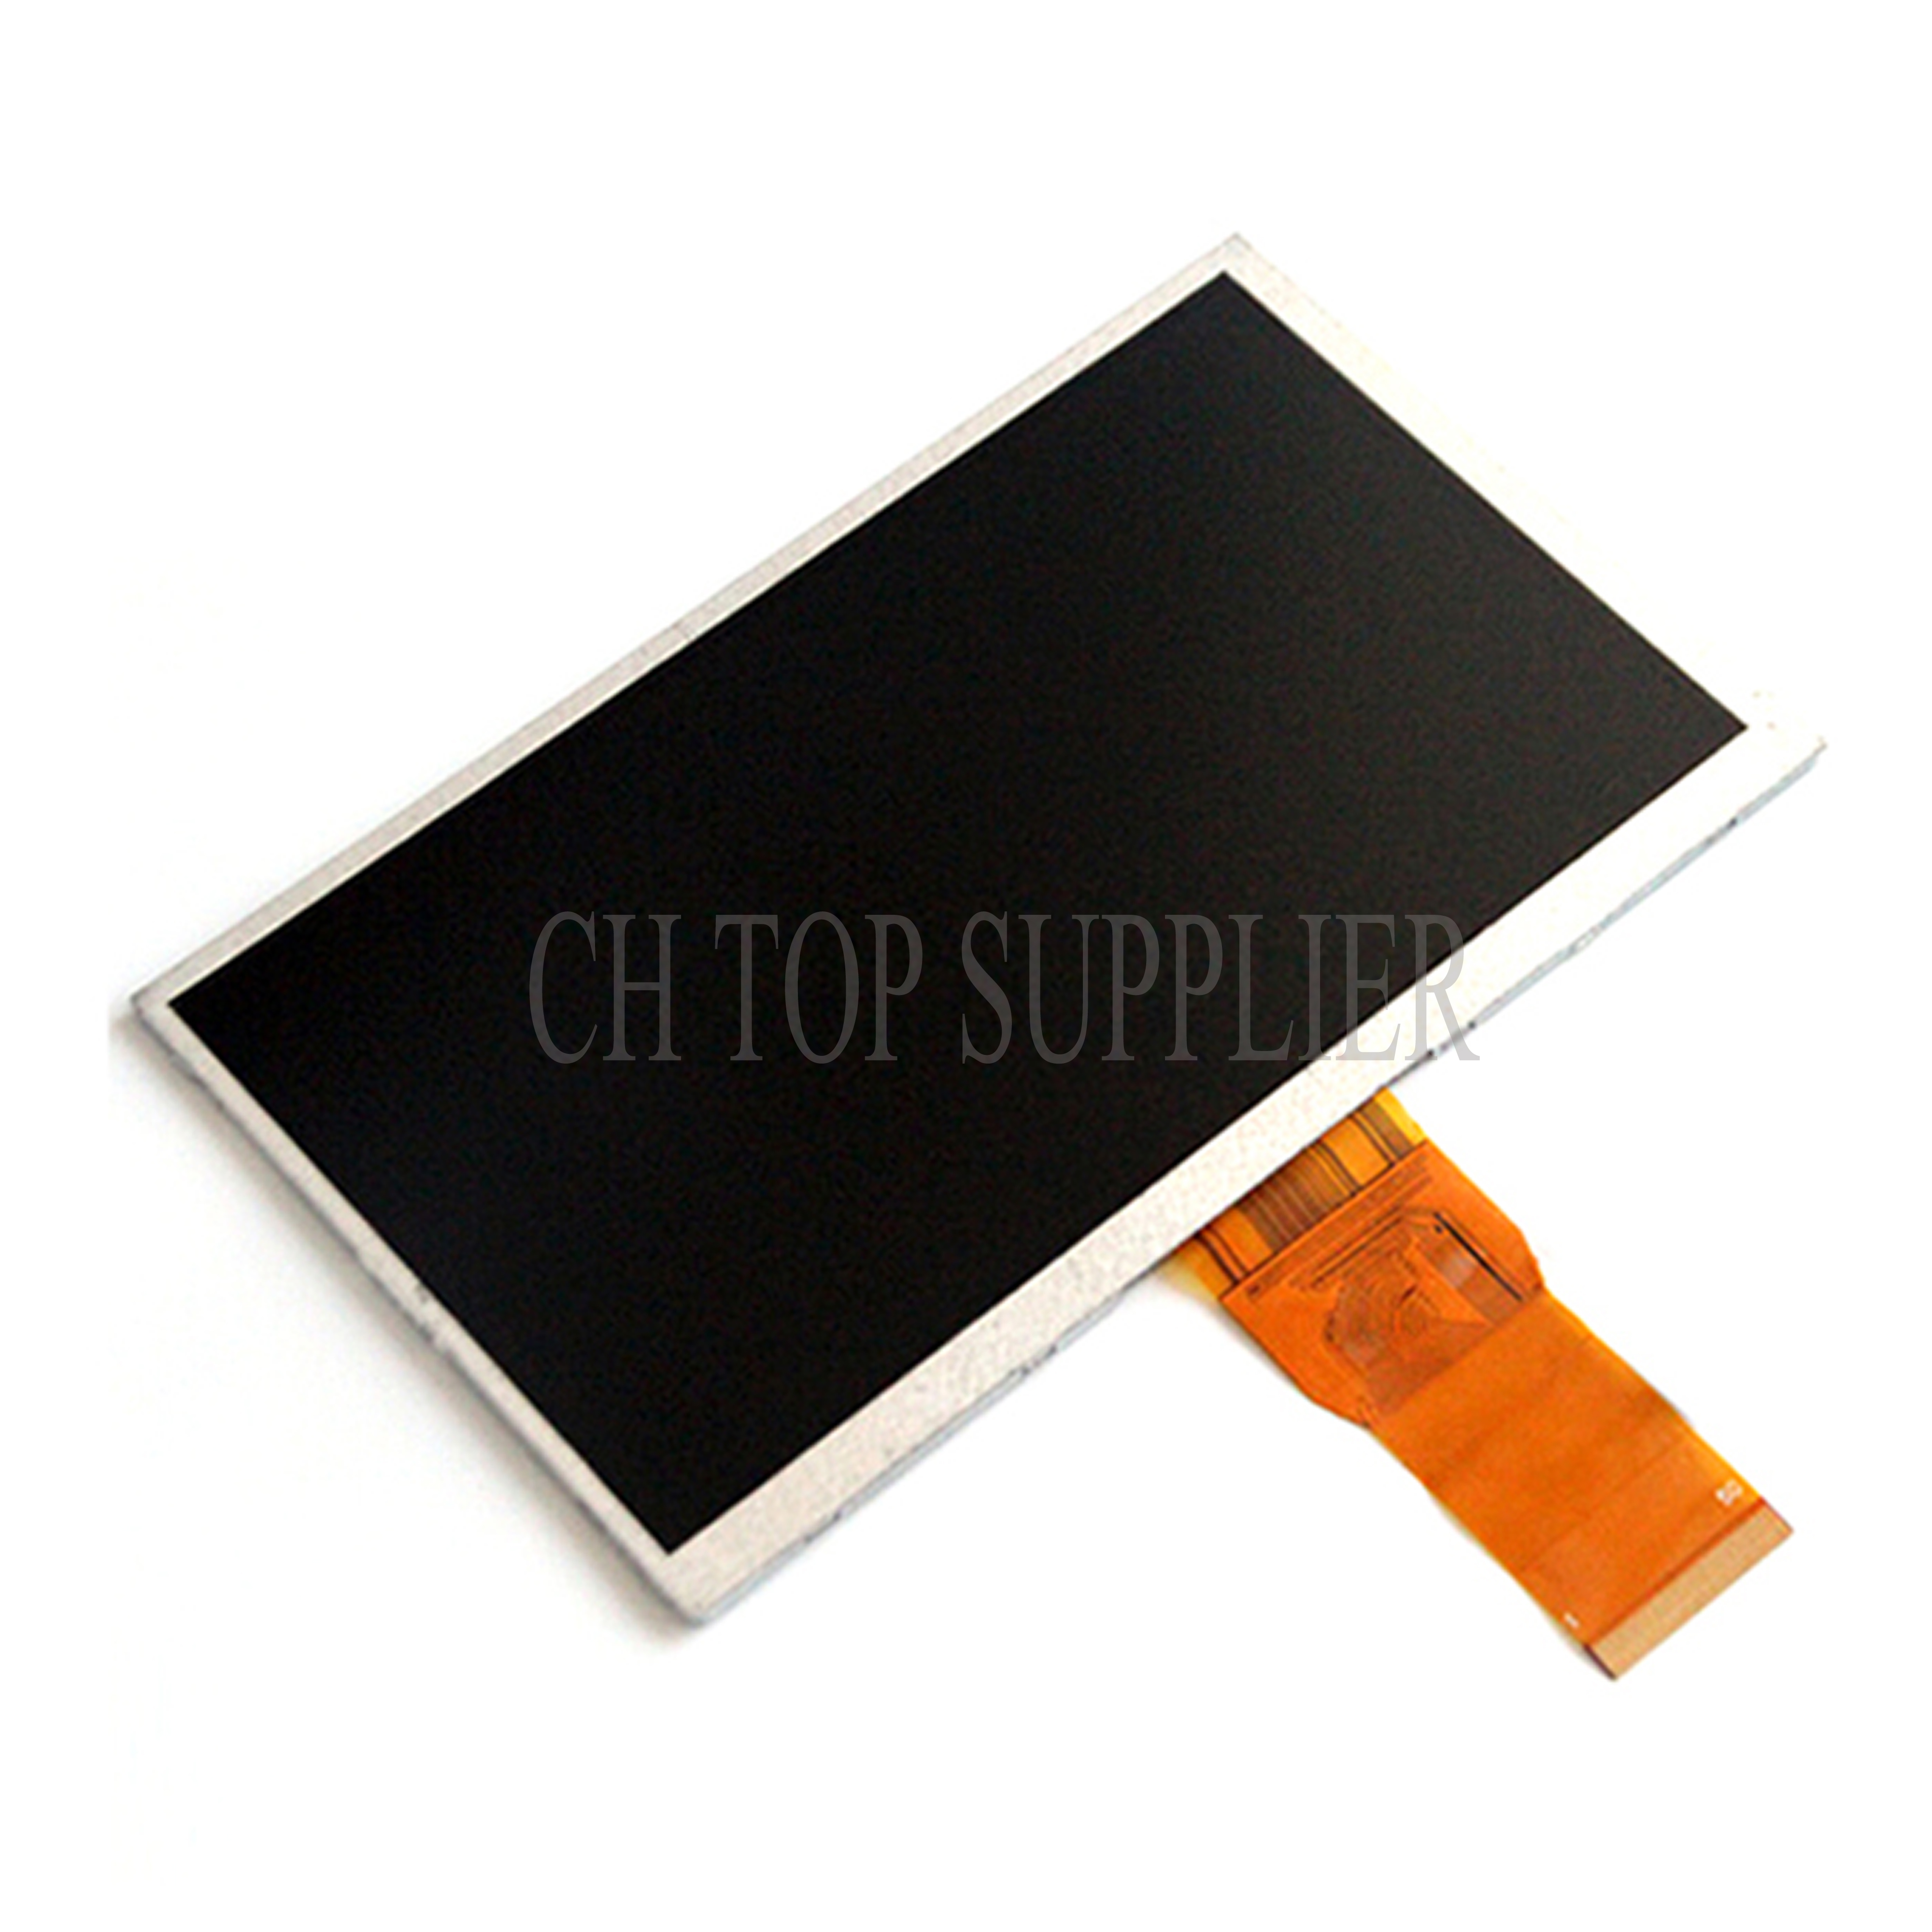 7inch 50pin LCD E203460 7300100070 for Ampe A76 A77, Sanei N77 ,Newmay M1 Tablet PC MID 800*600 new original 7 inch tablet lcd screen 7300100070 e203460 for soulycin s8 elite edition ployer p702 aigo m788 tablets lcd